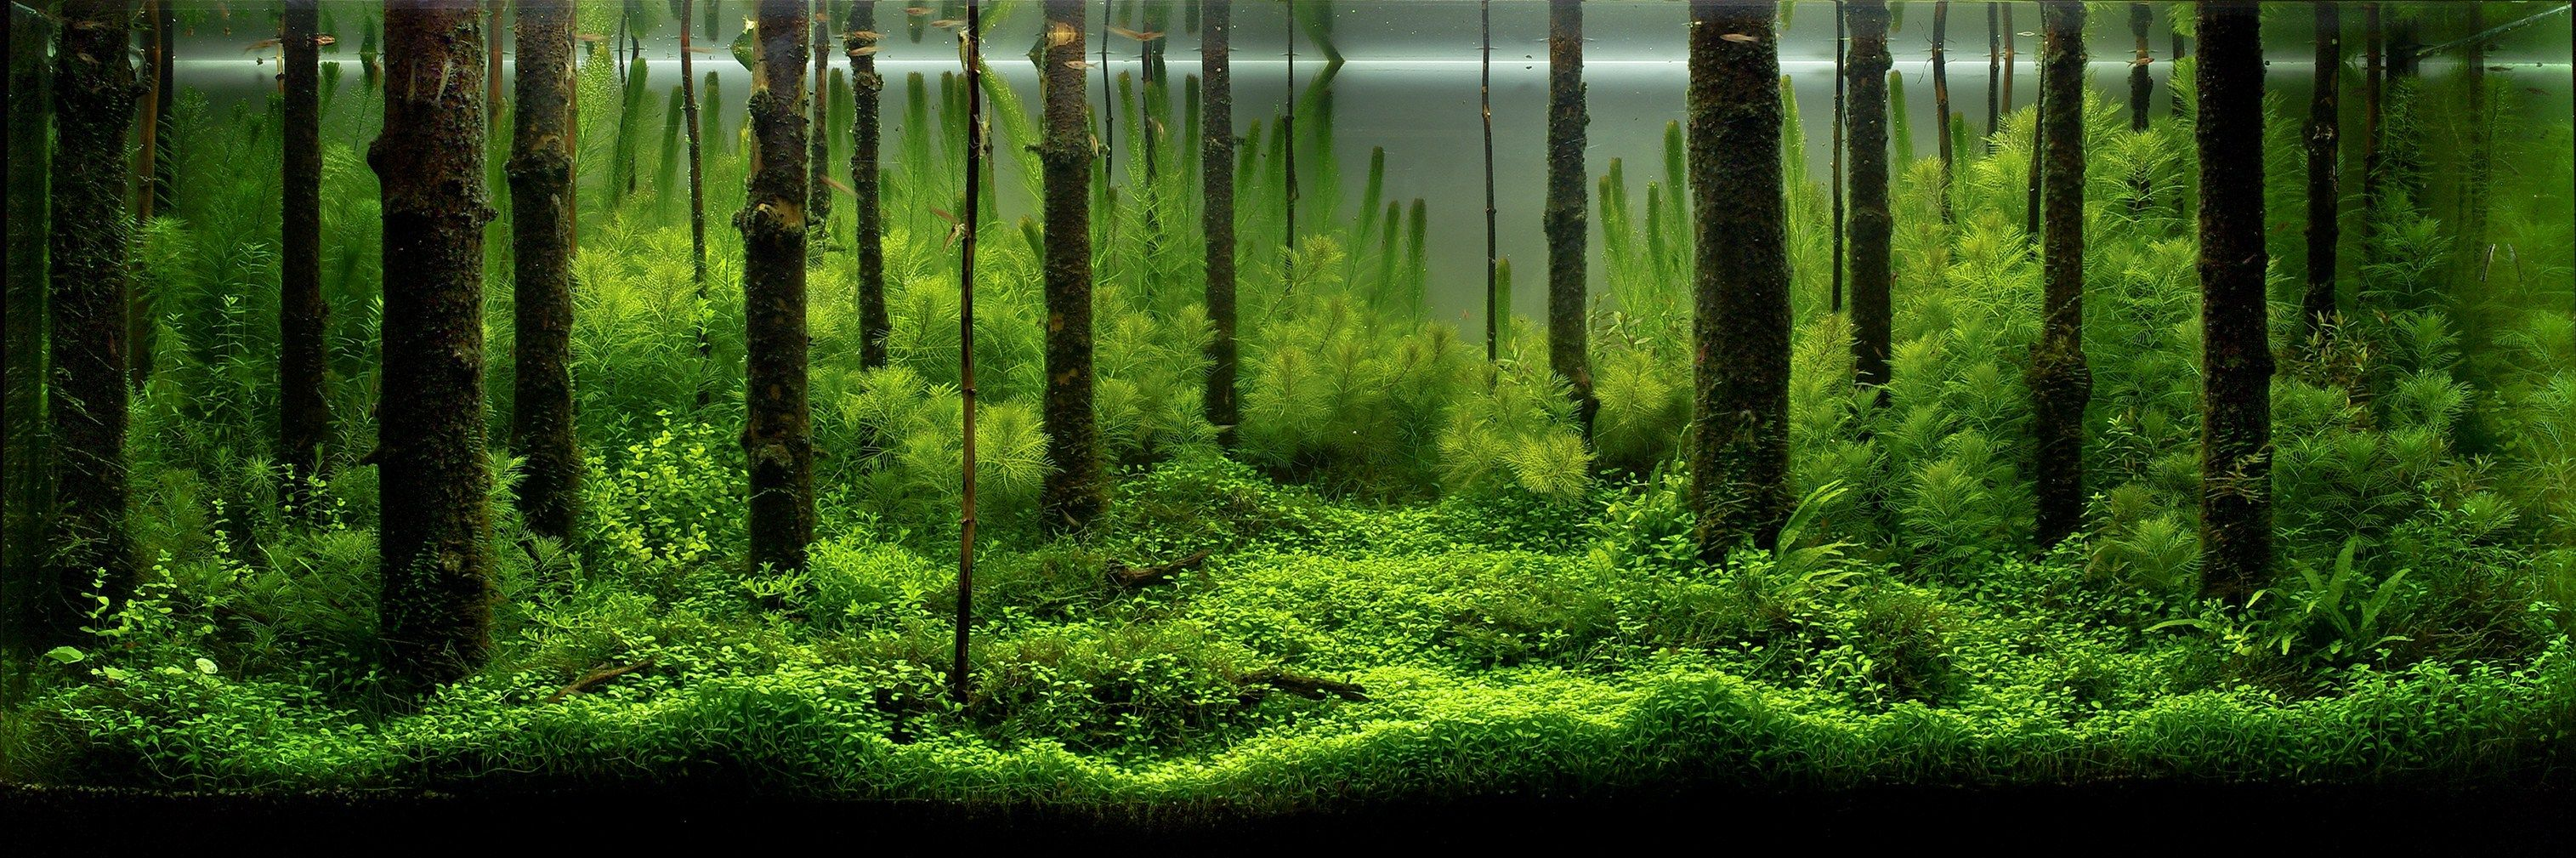 17 Best 1000 images about aquascape on Pinterest Urban gardening Art